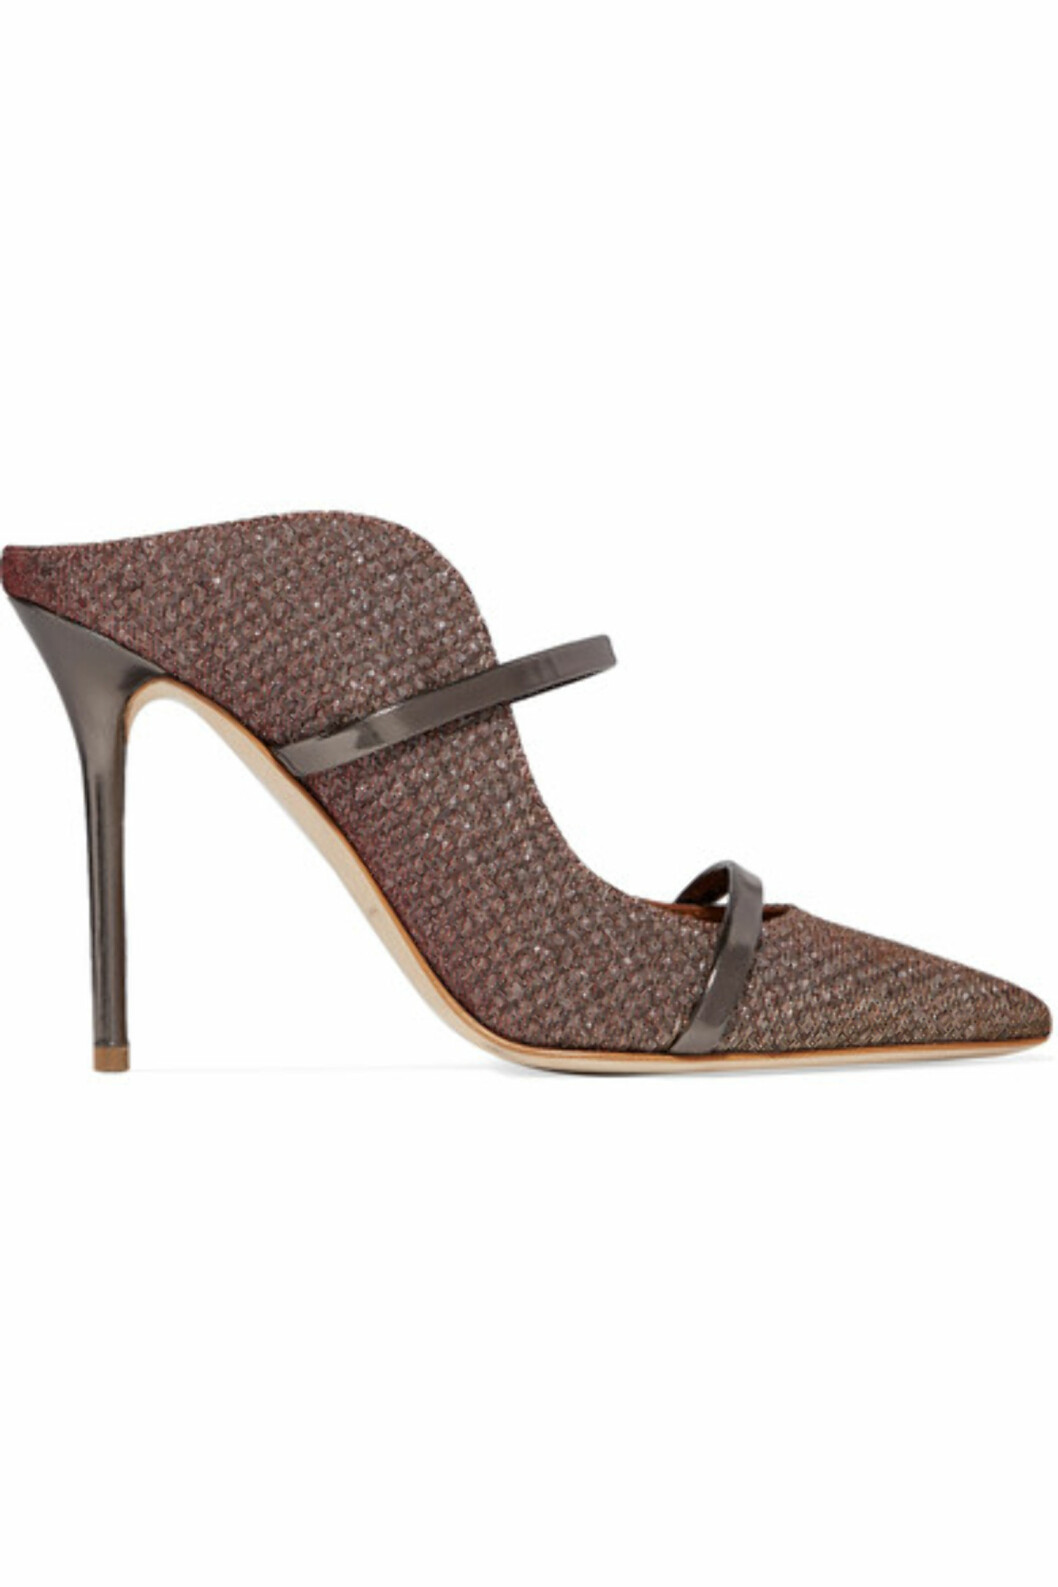 Hæler fra Malone Souliers via Net-a-porter.com |5200,-| https://www.net-a-porter.com/no/en/product/980736/malone_souliers/maureen-leather-trimmed-metallic-mesh-mules